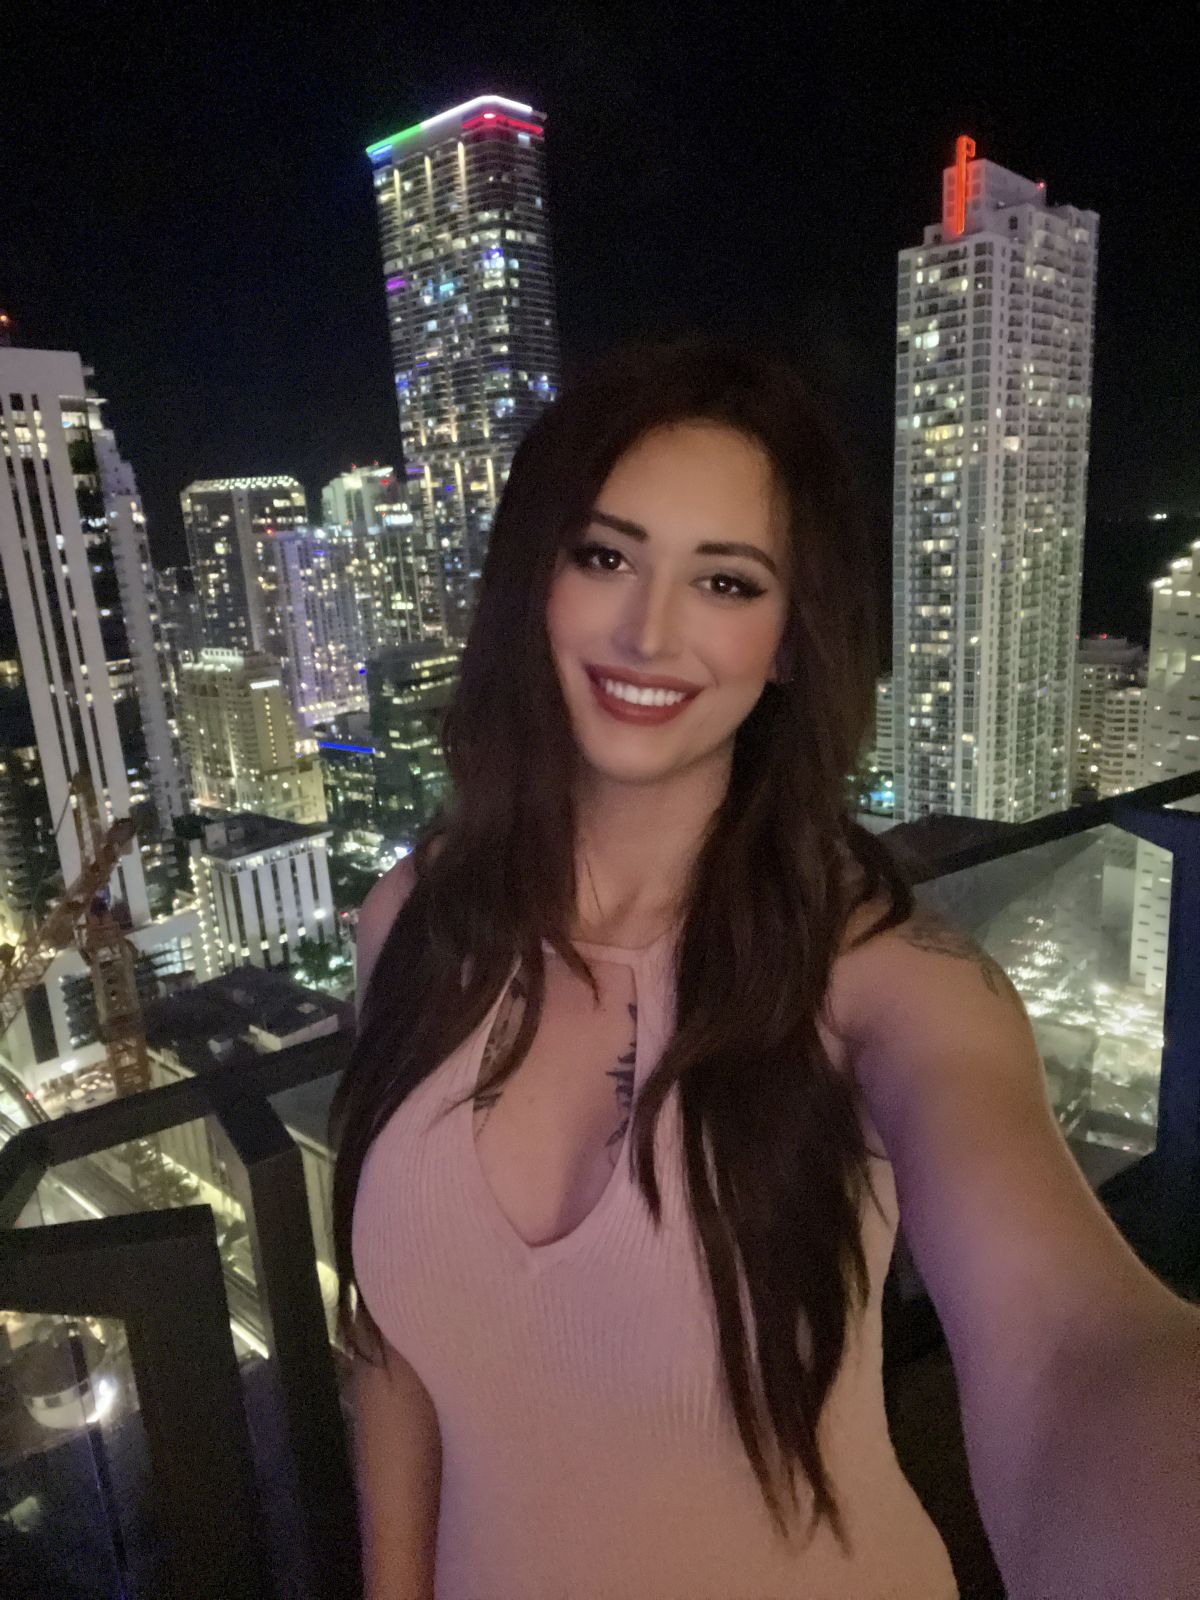 Alessandra photos and videos onlyfans leaked